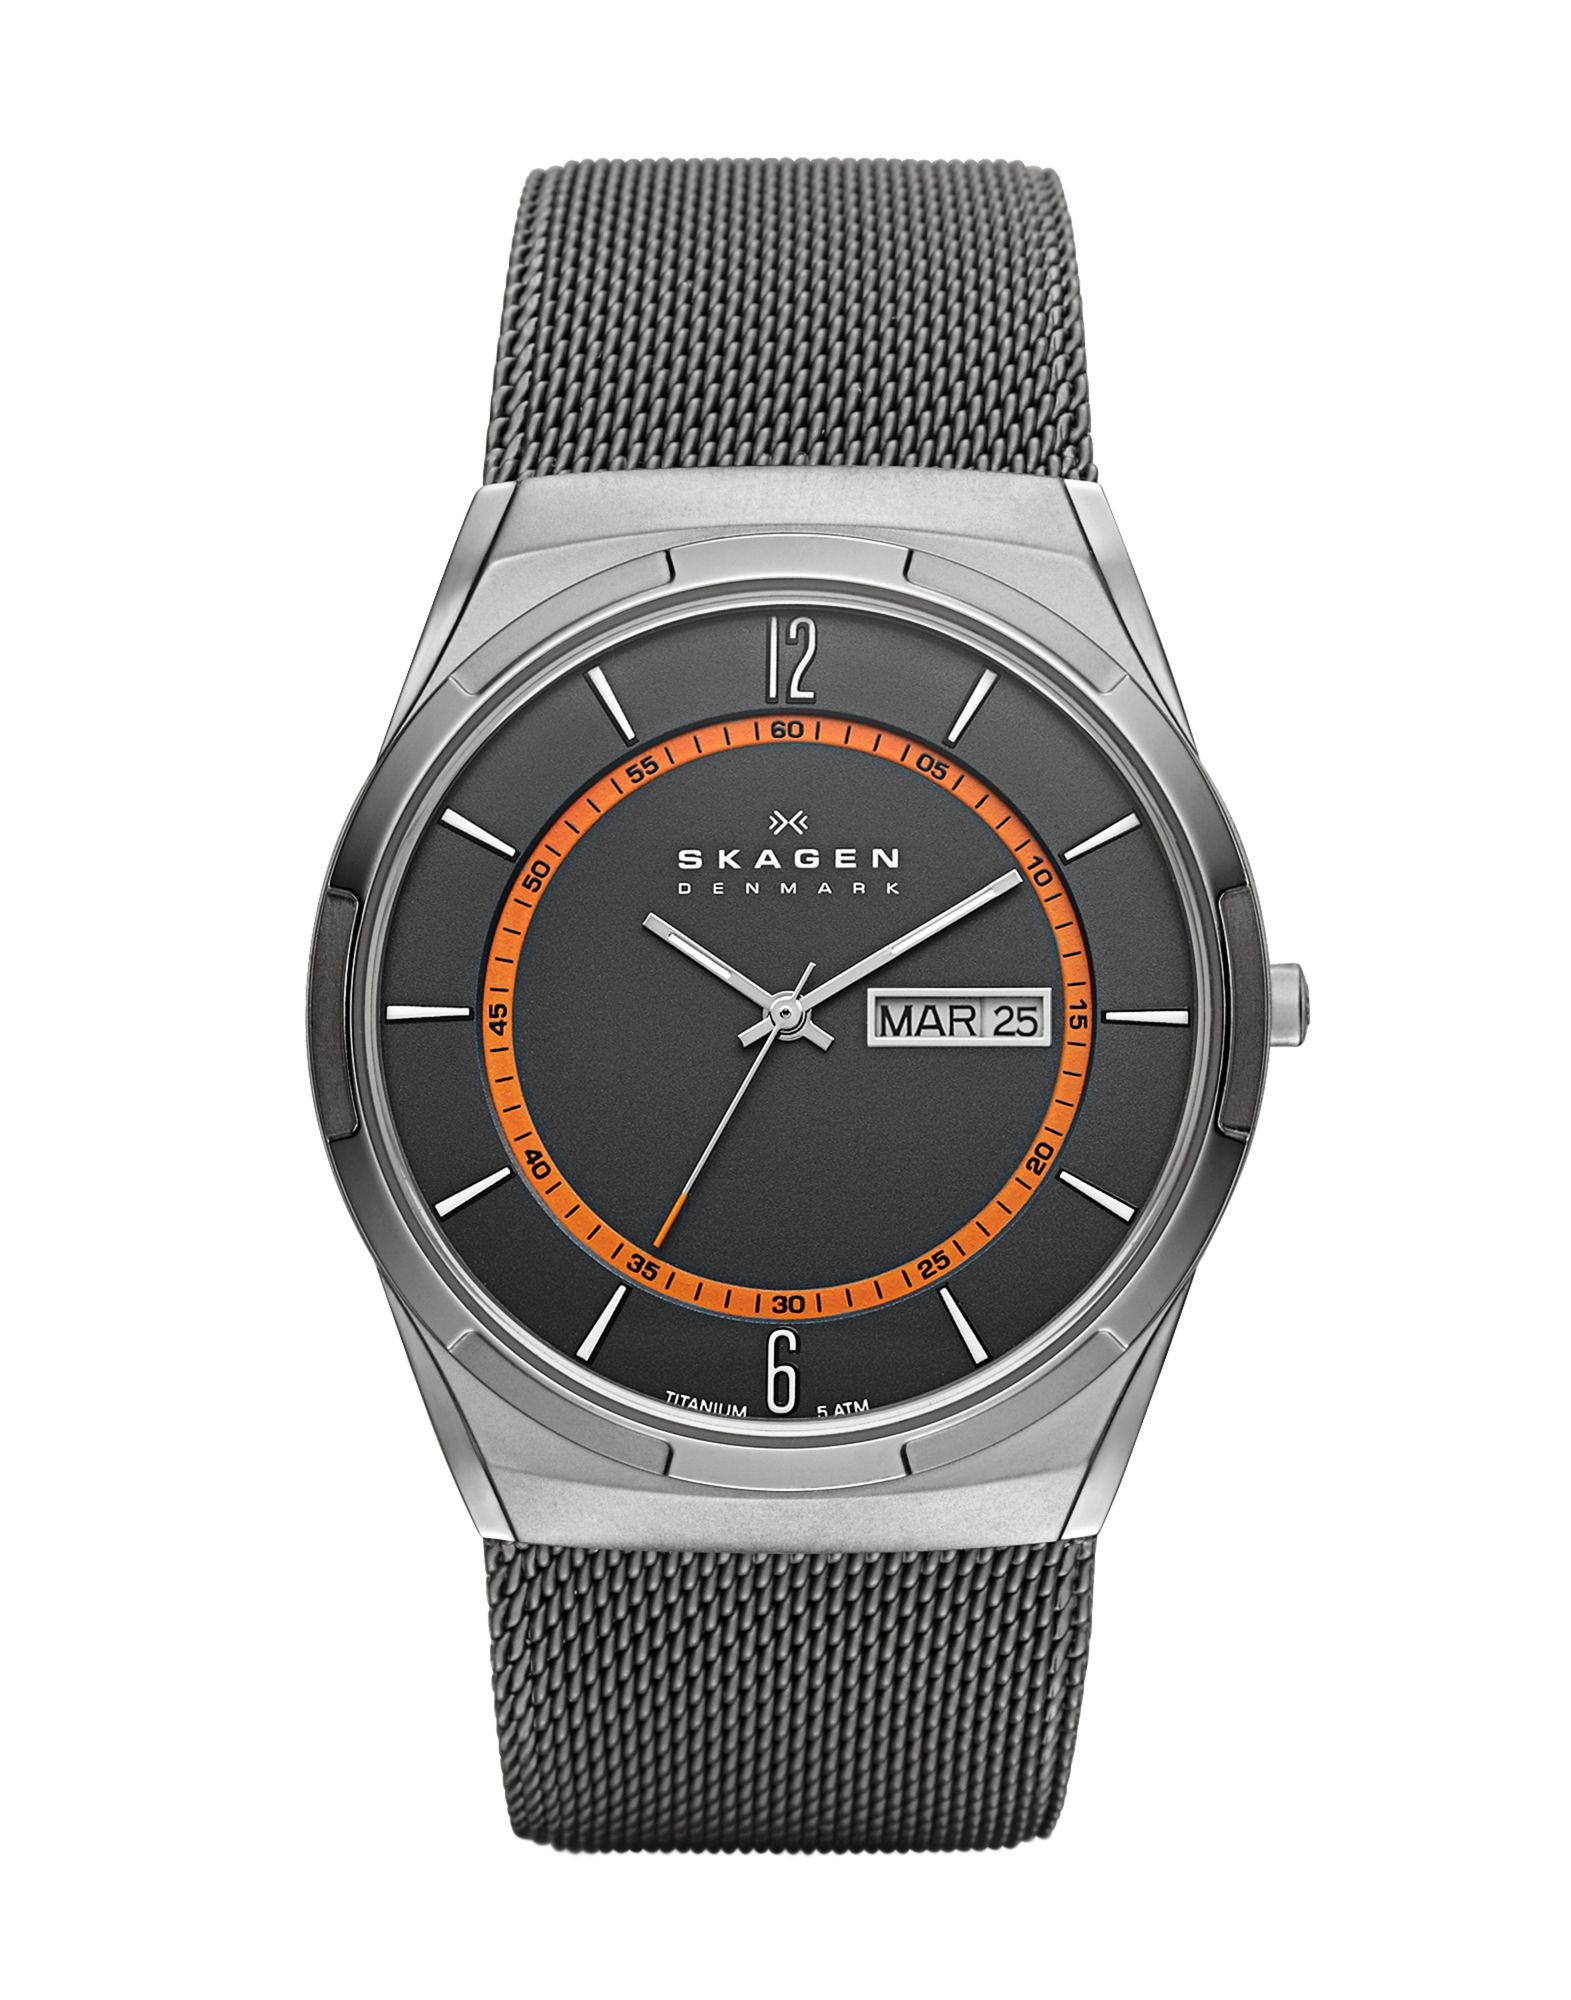 Skagen Denmark Wrist Watches